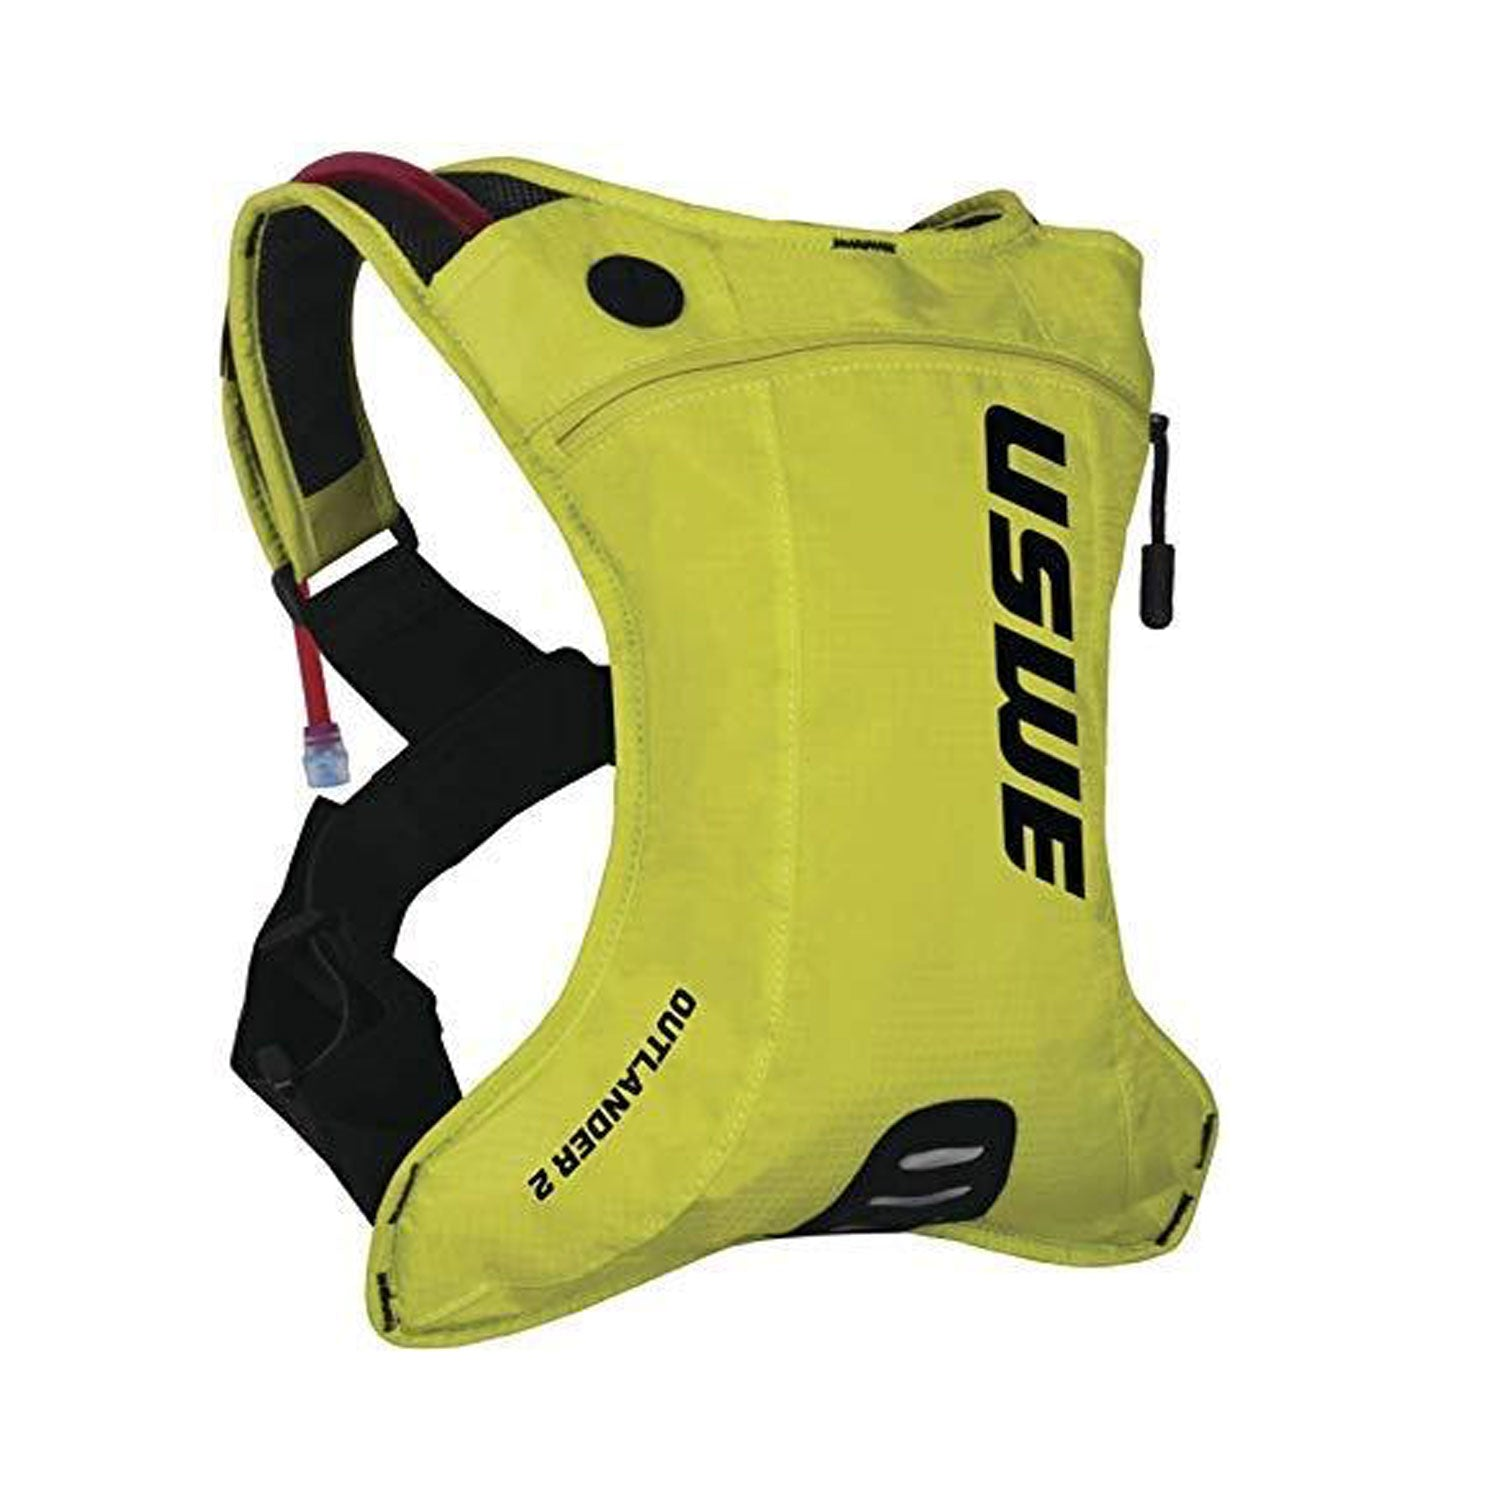 CAMEL BAG AIRBORNE 2 CRAZY YELLOW